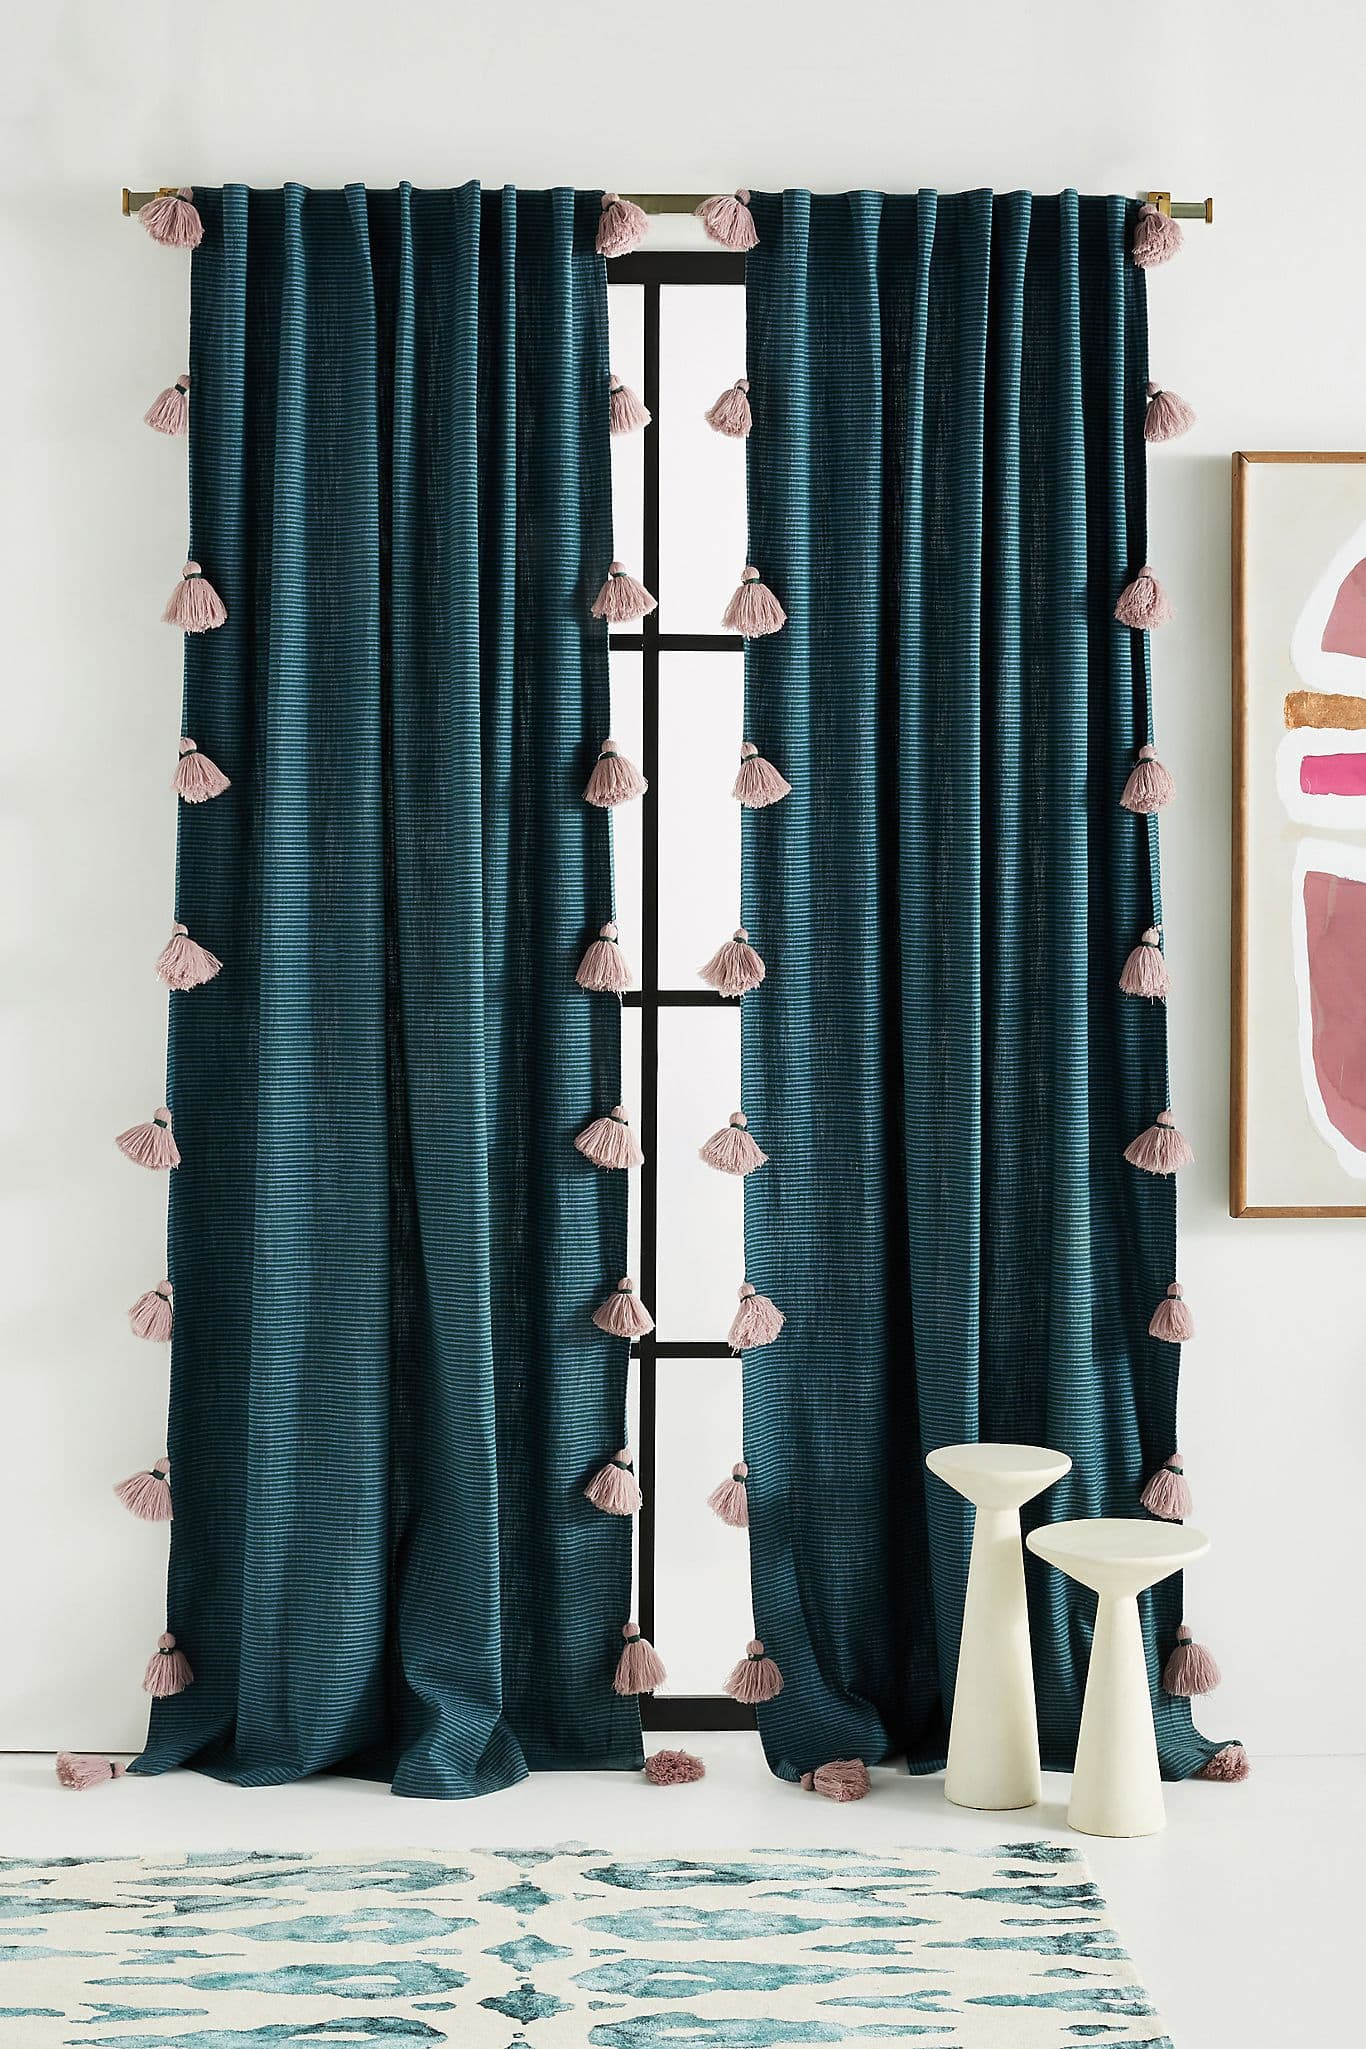 Navy Blue Curtains With Pink Tassels